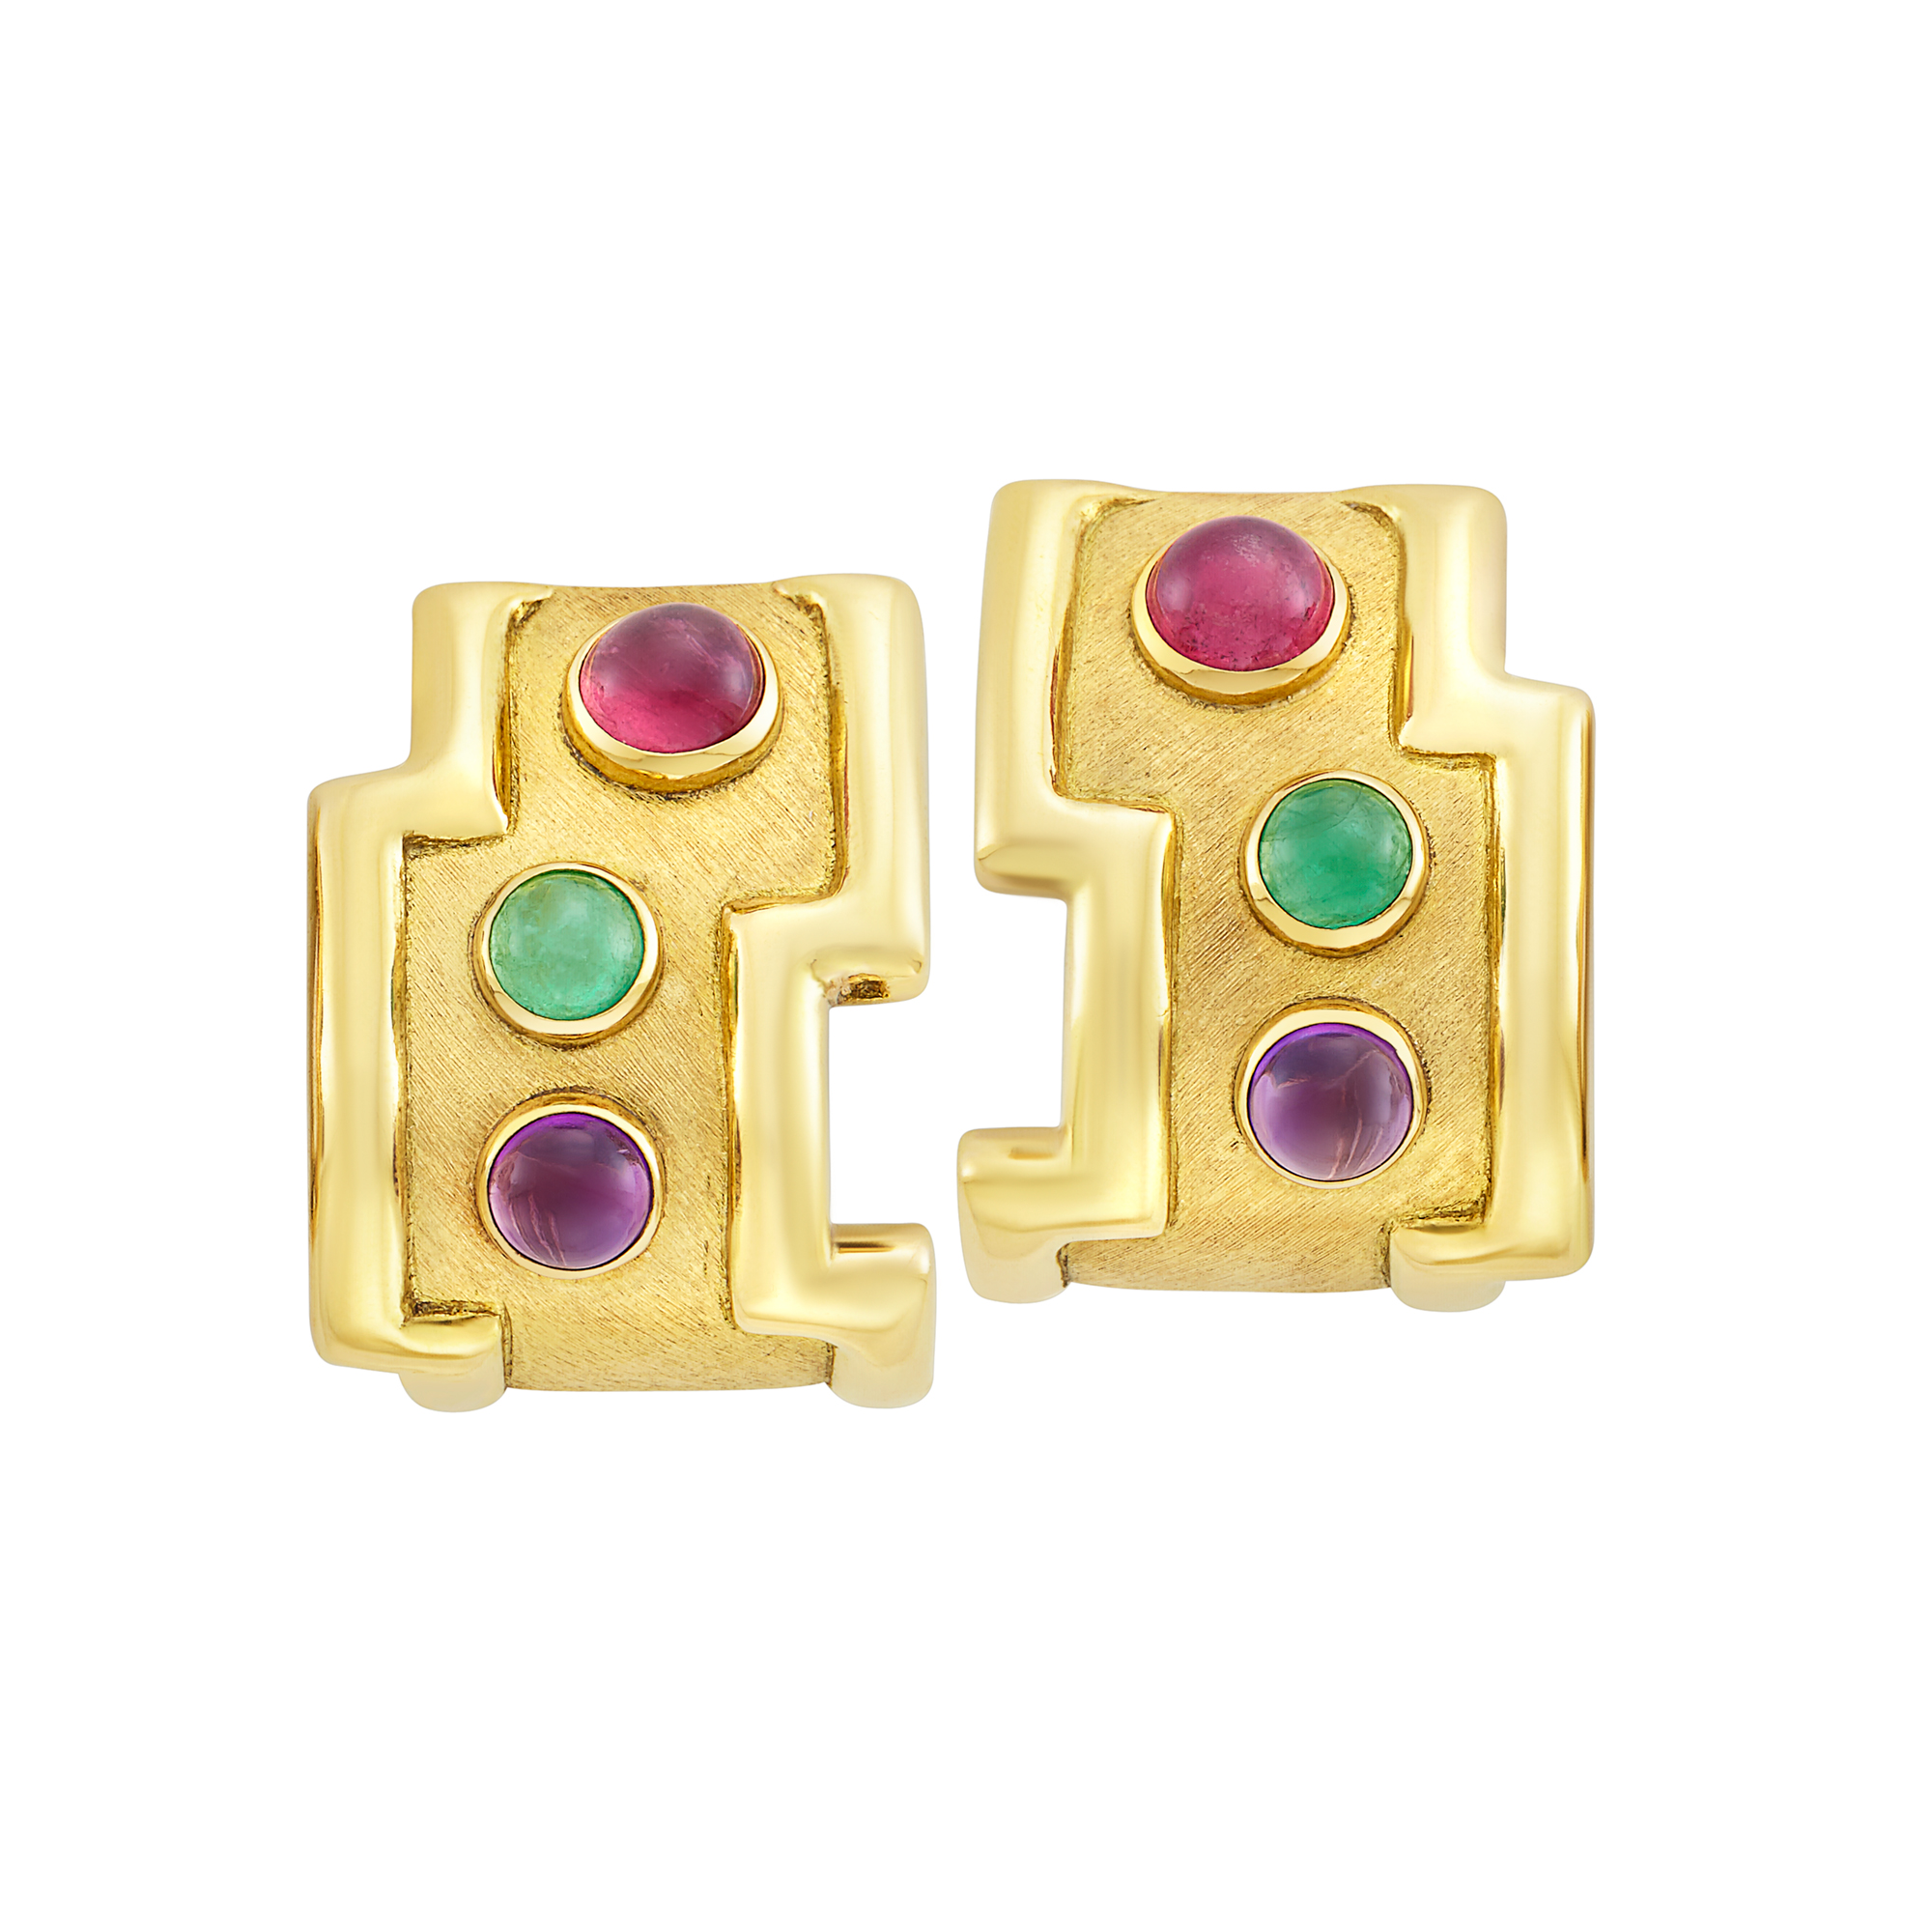 Lot image - Pair of Gold and Cabochon Gem-Set Earclips, Haroldo Burle Marx